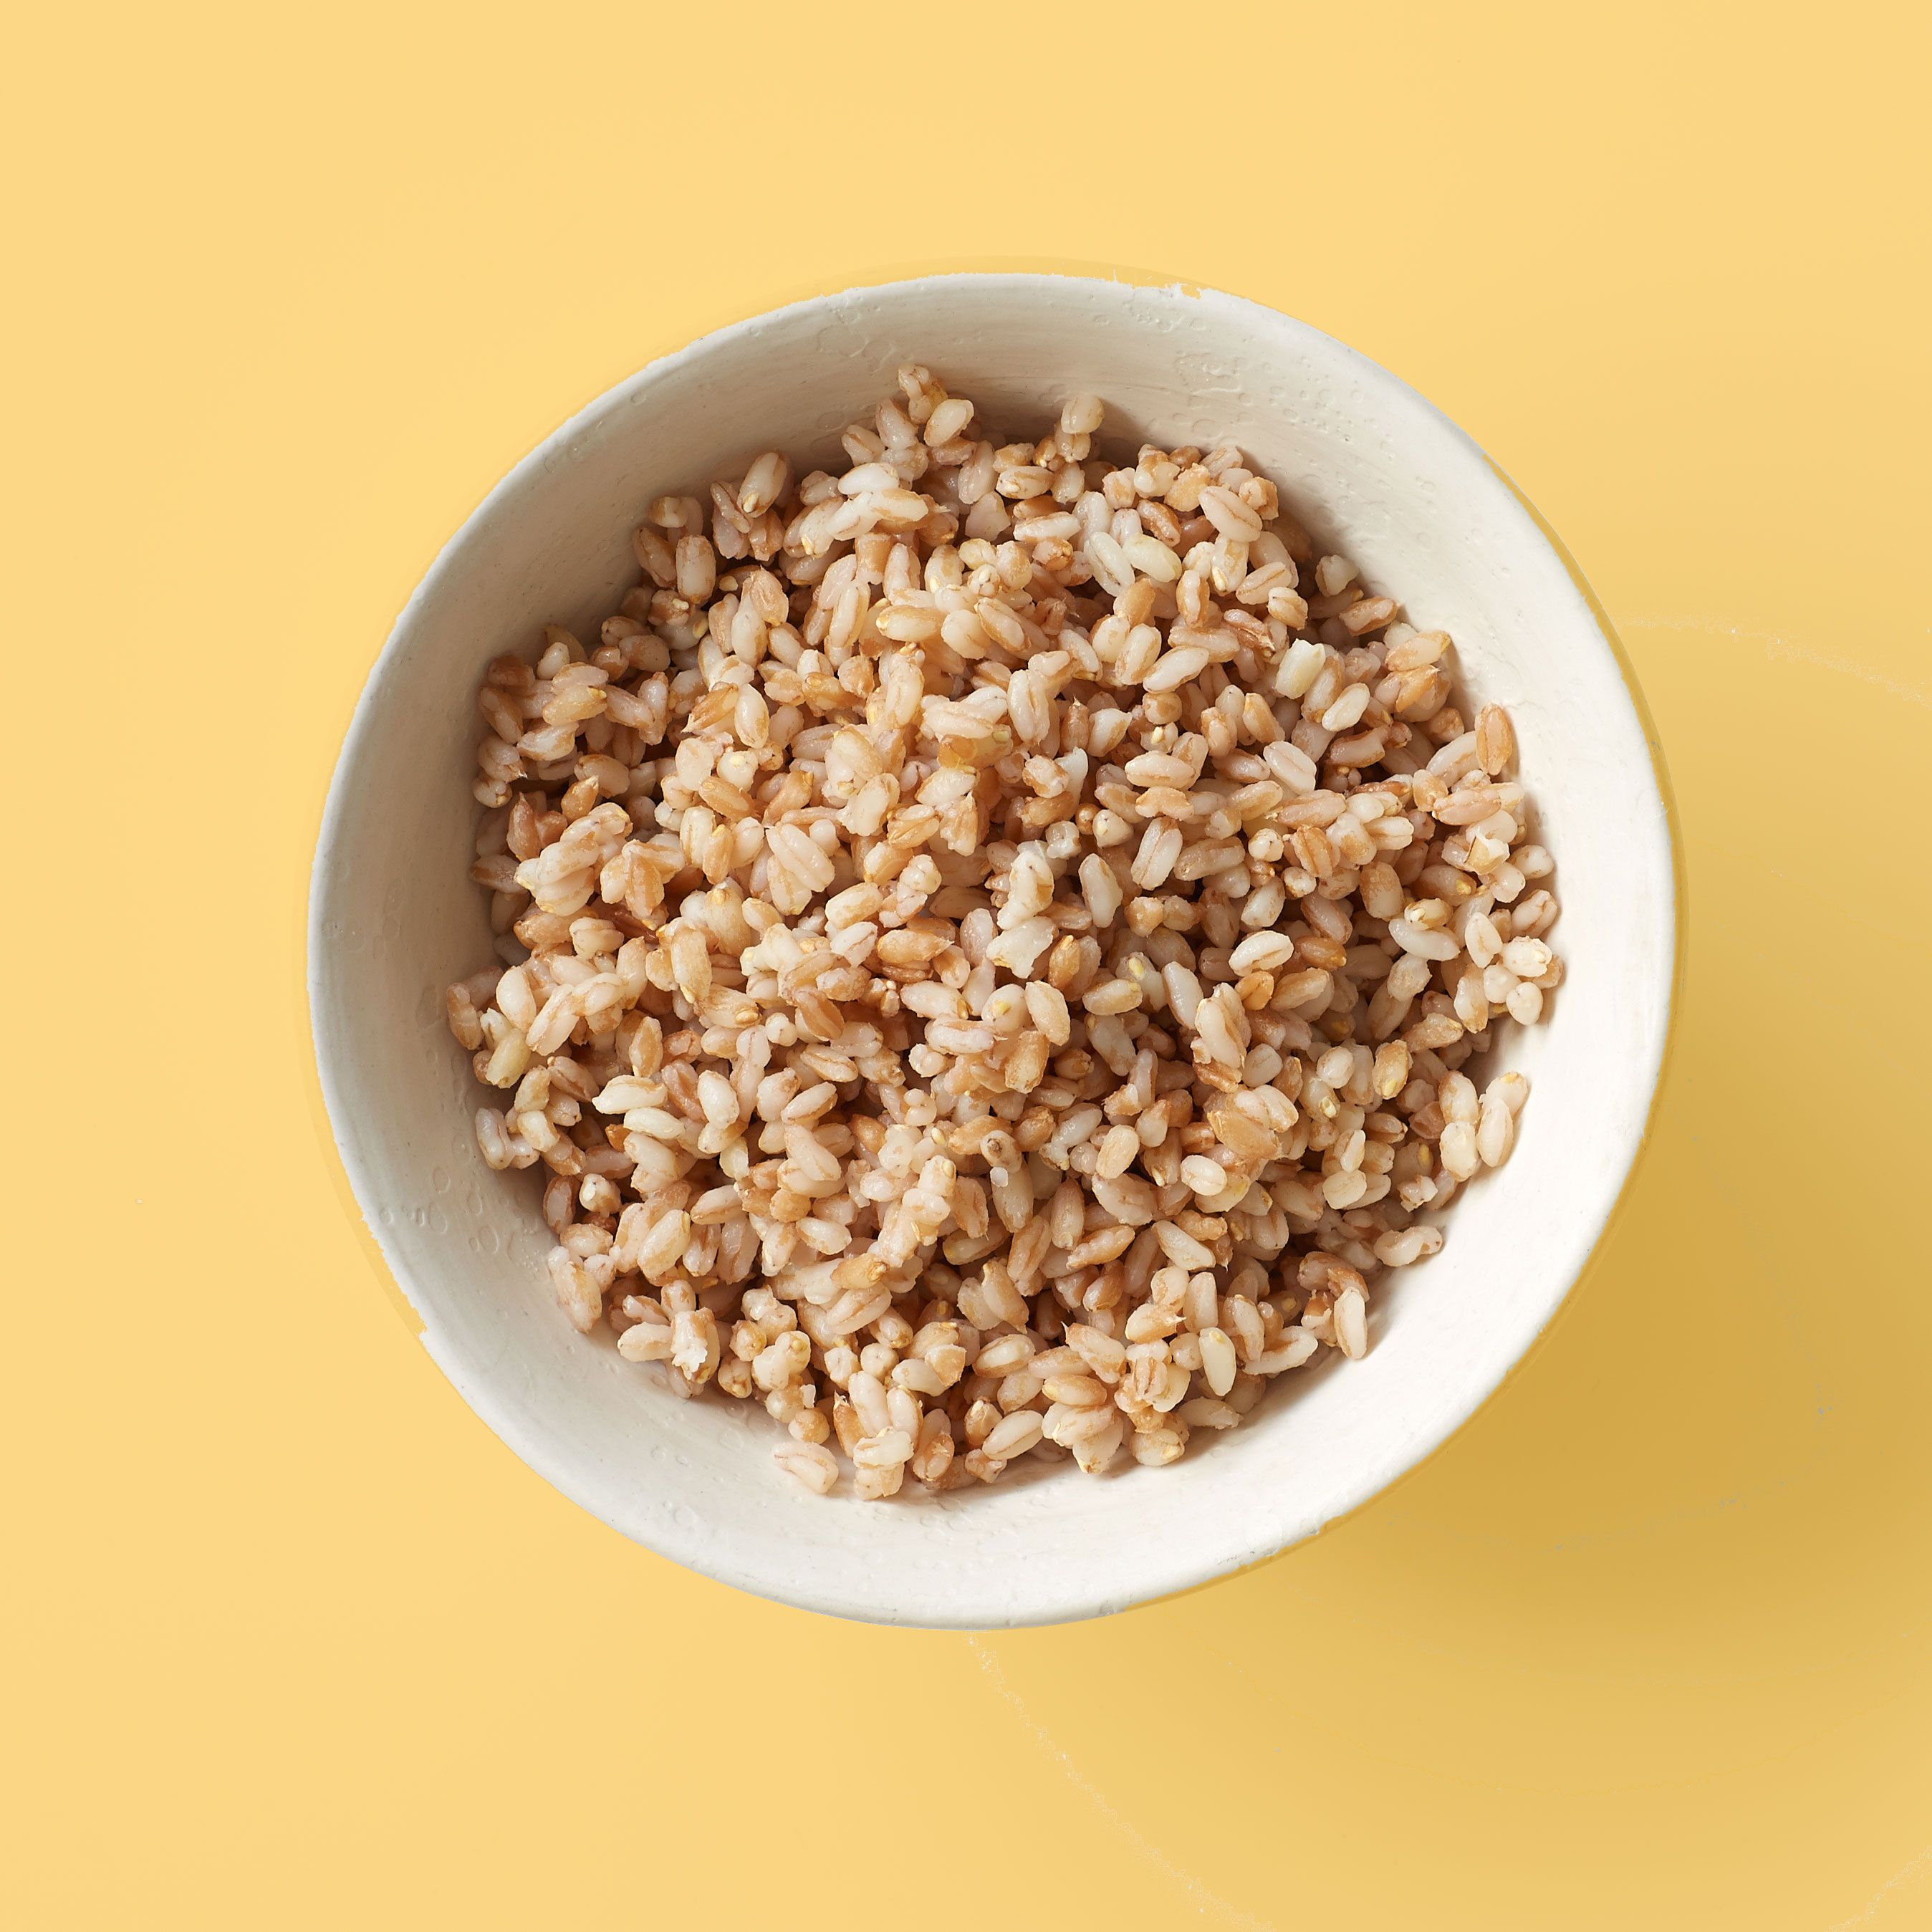 Should i eat brown rice if i am trying to lose weight